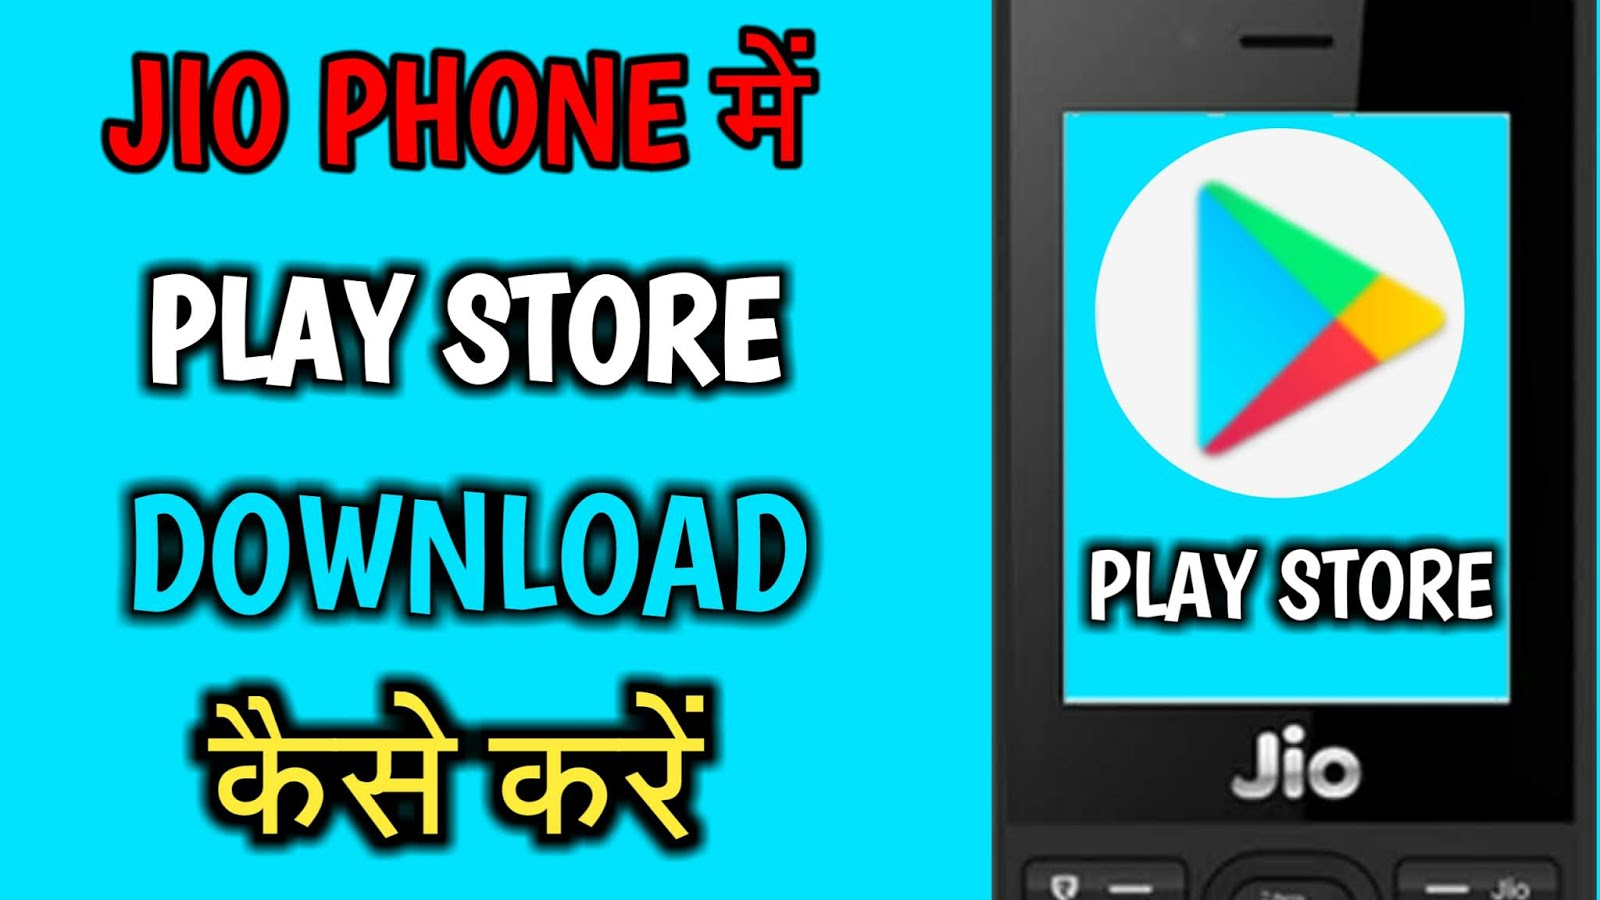 Jio phone me play store kaise download kare - how to download play